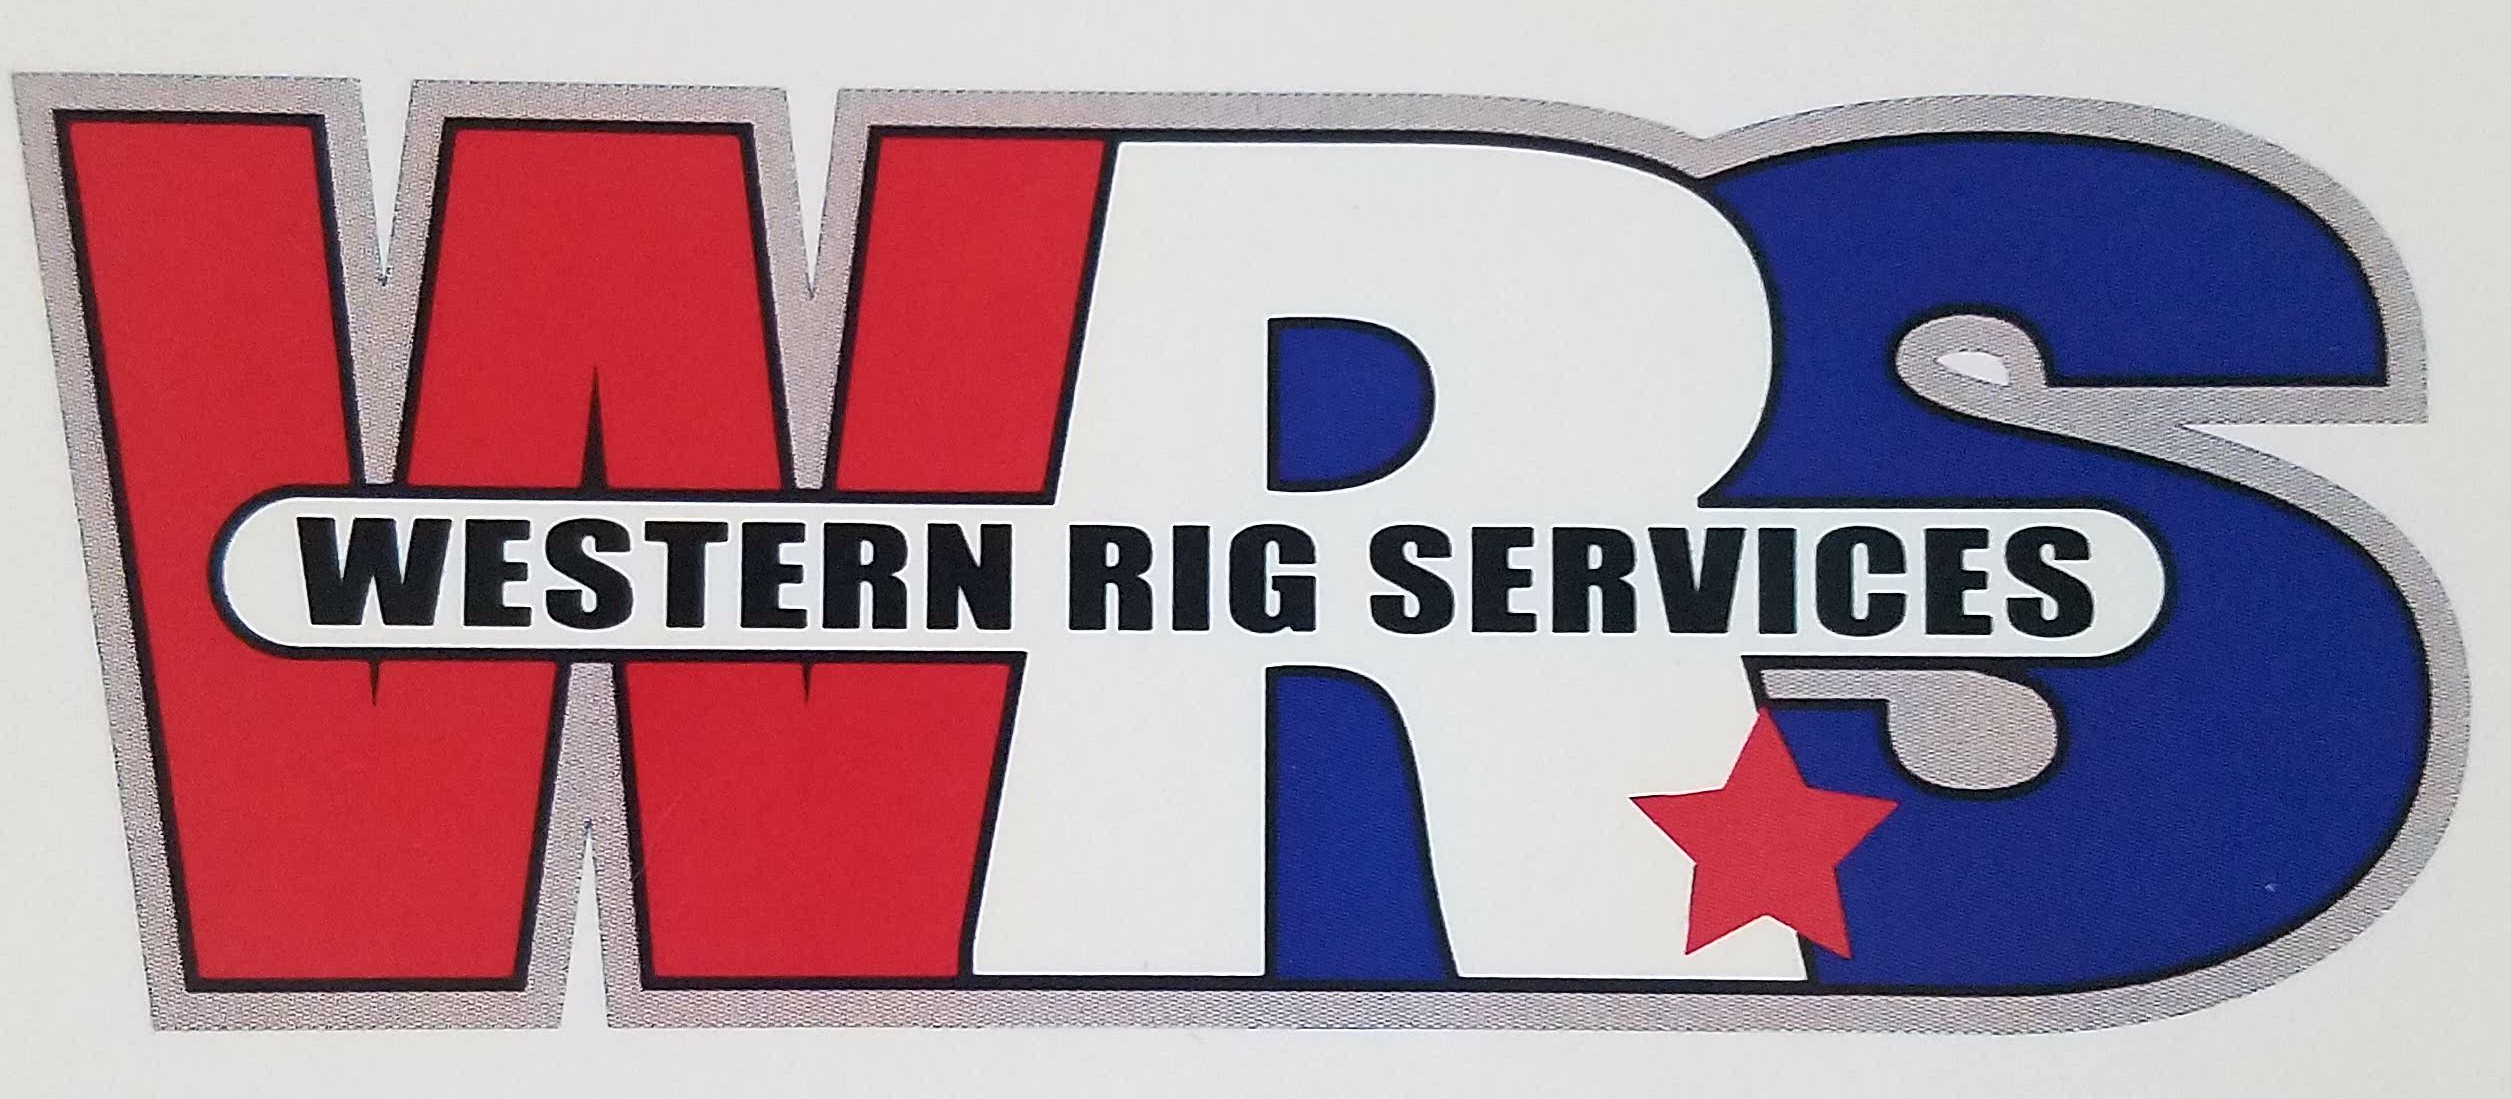 Western Rig Services